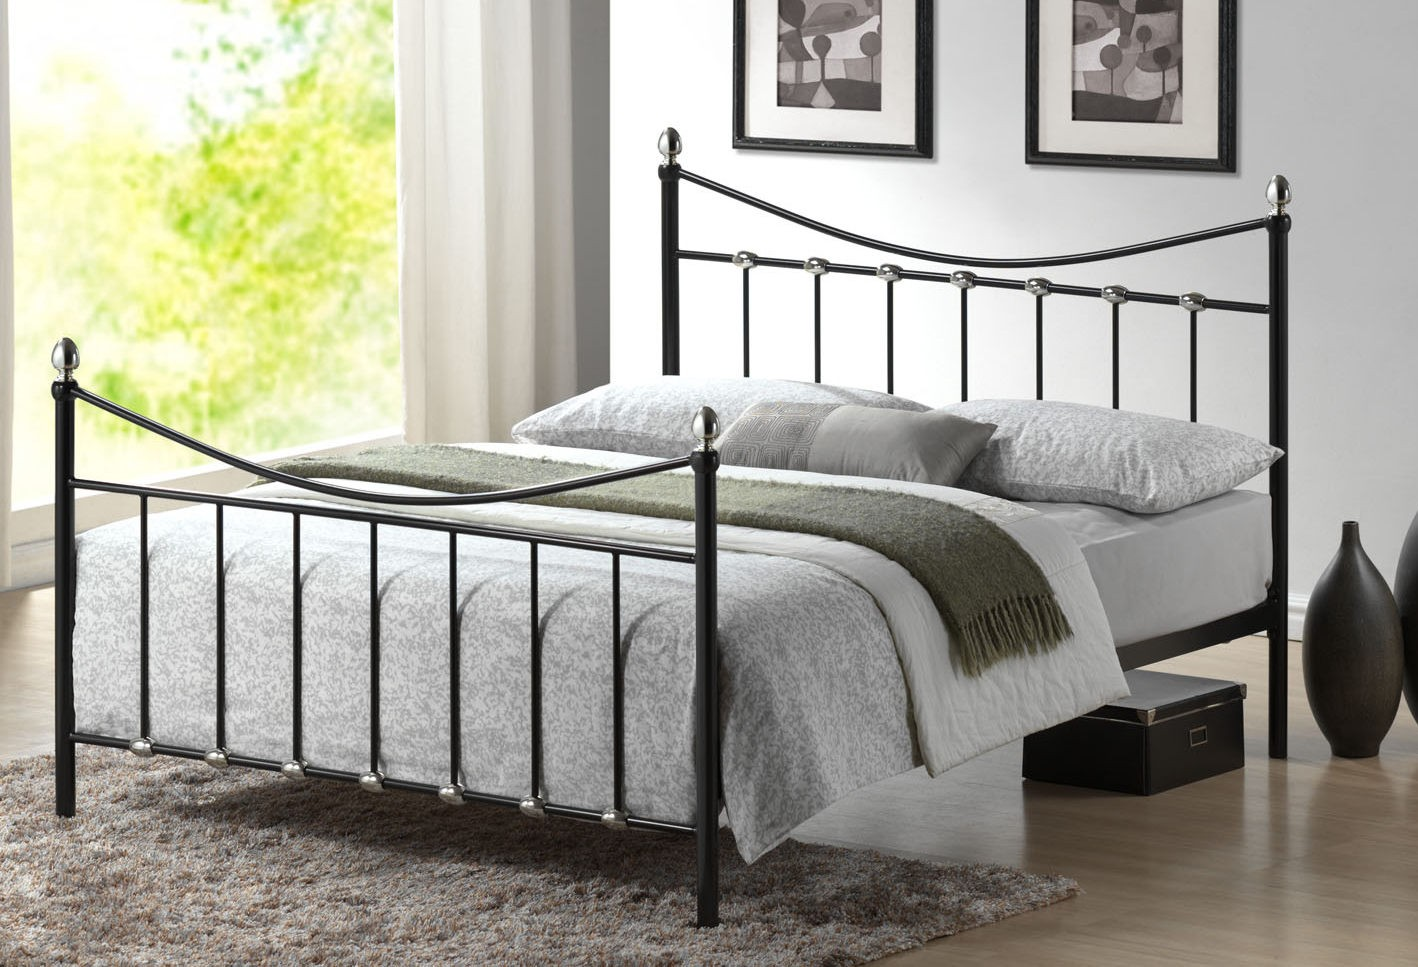 Metal beds in bedroom design for Bedroom bed design